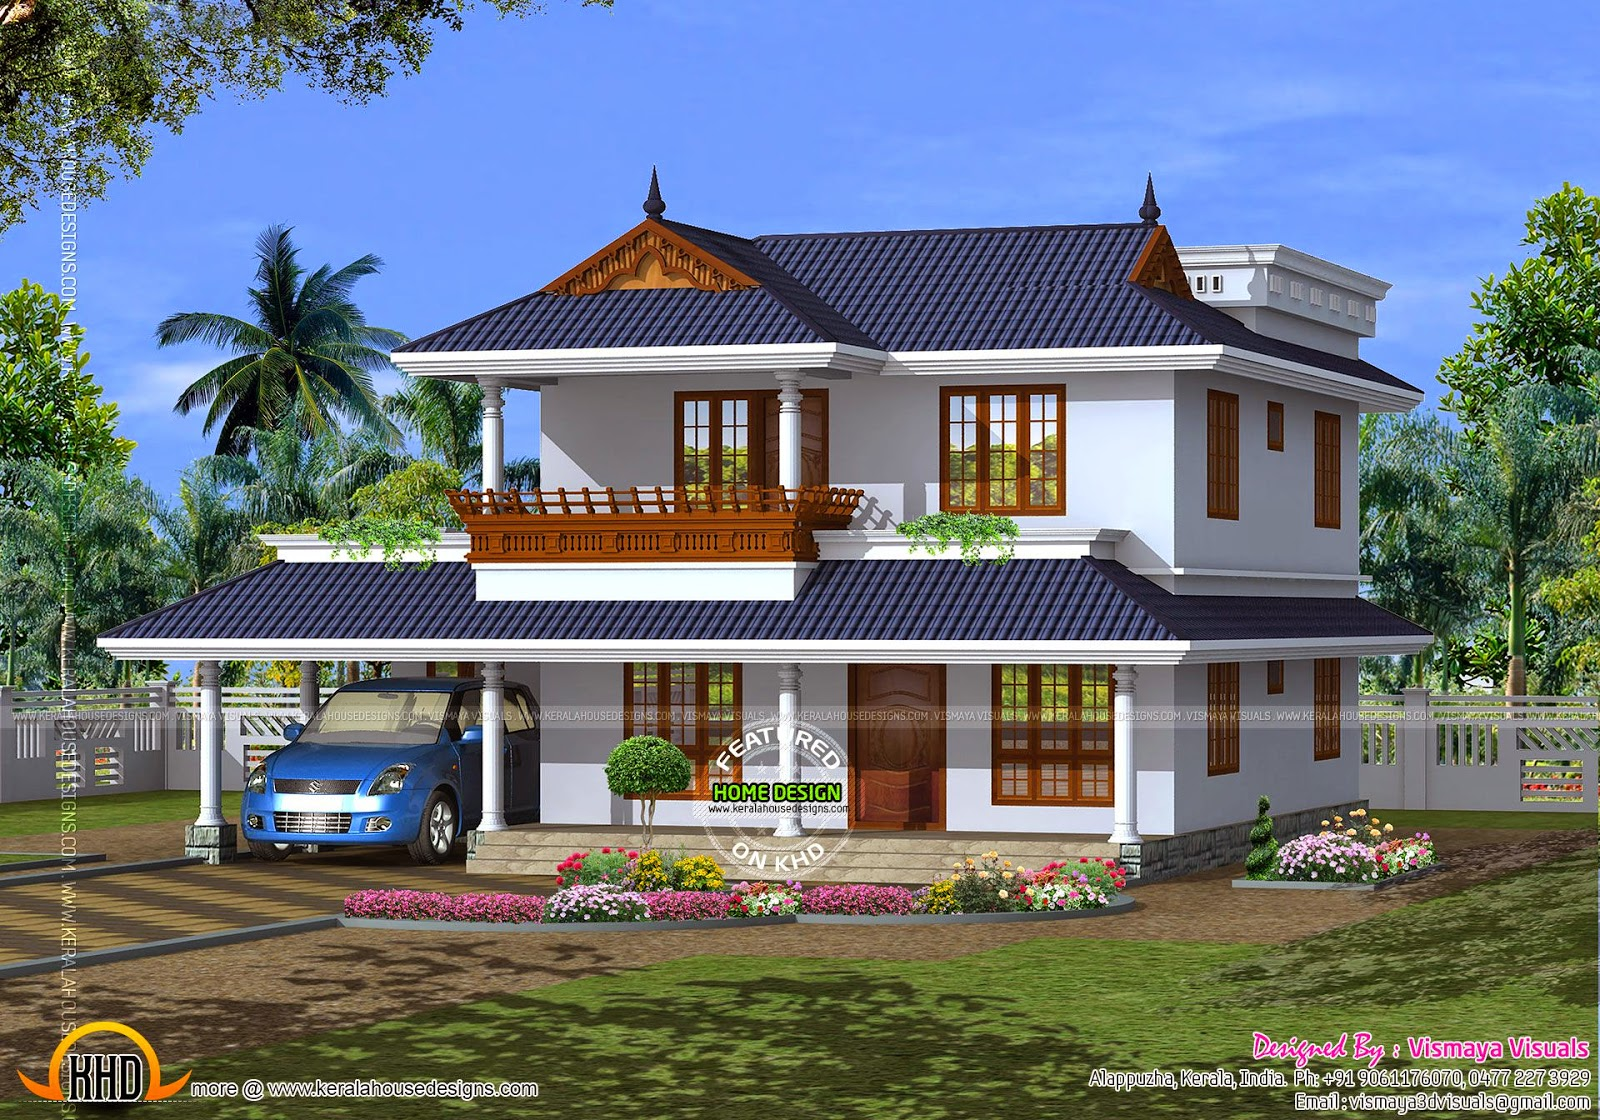 Logost kerala model home joy studio design gallery for Kerala house models and plans